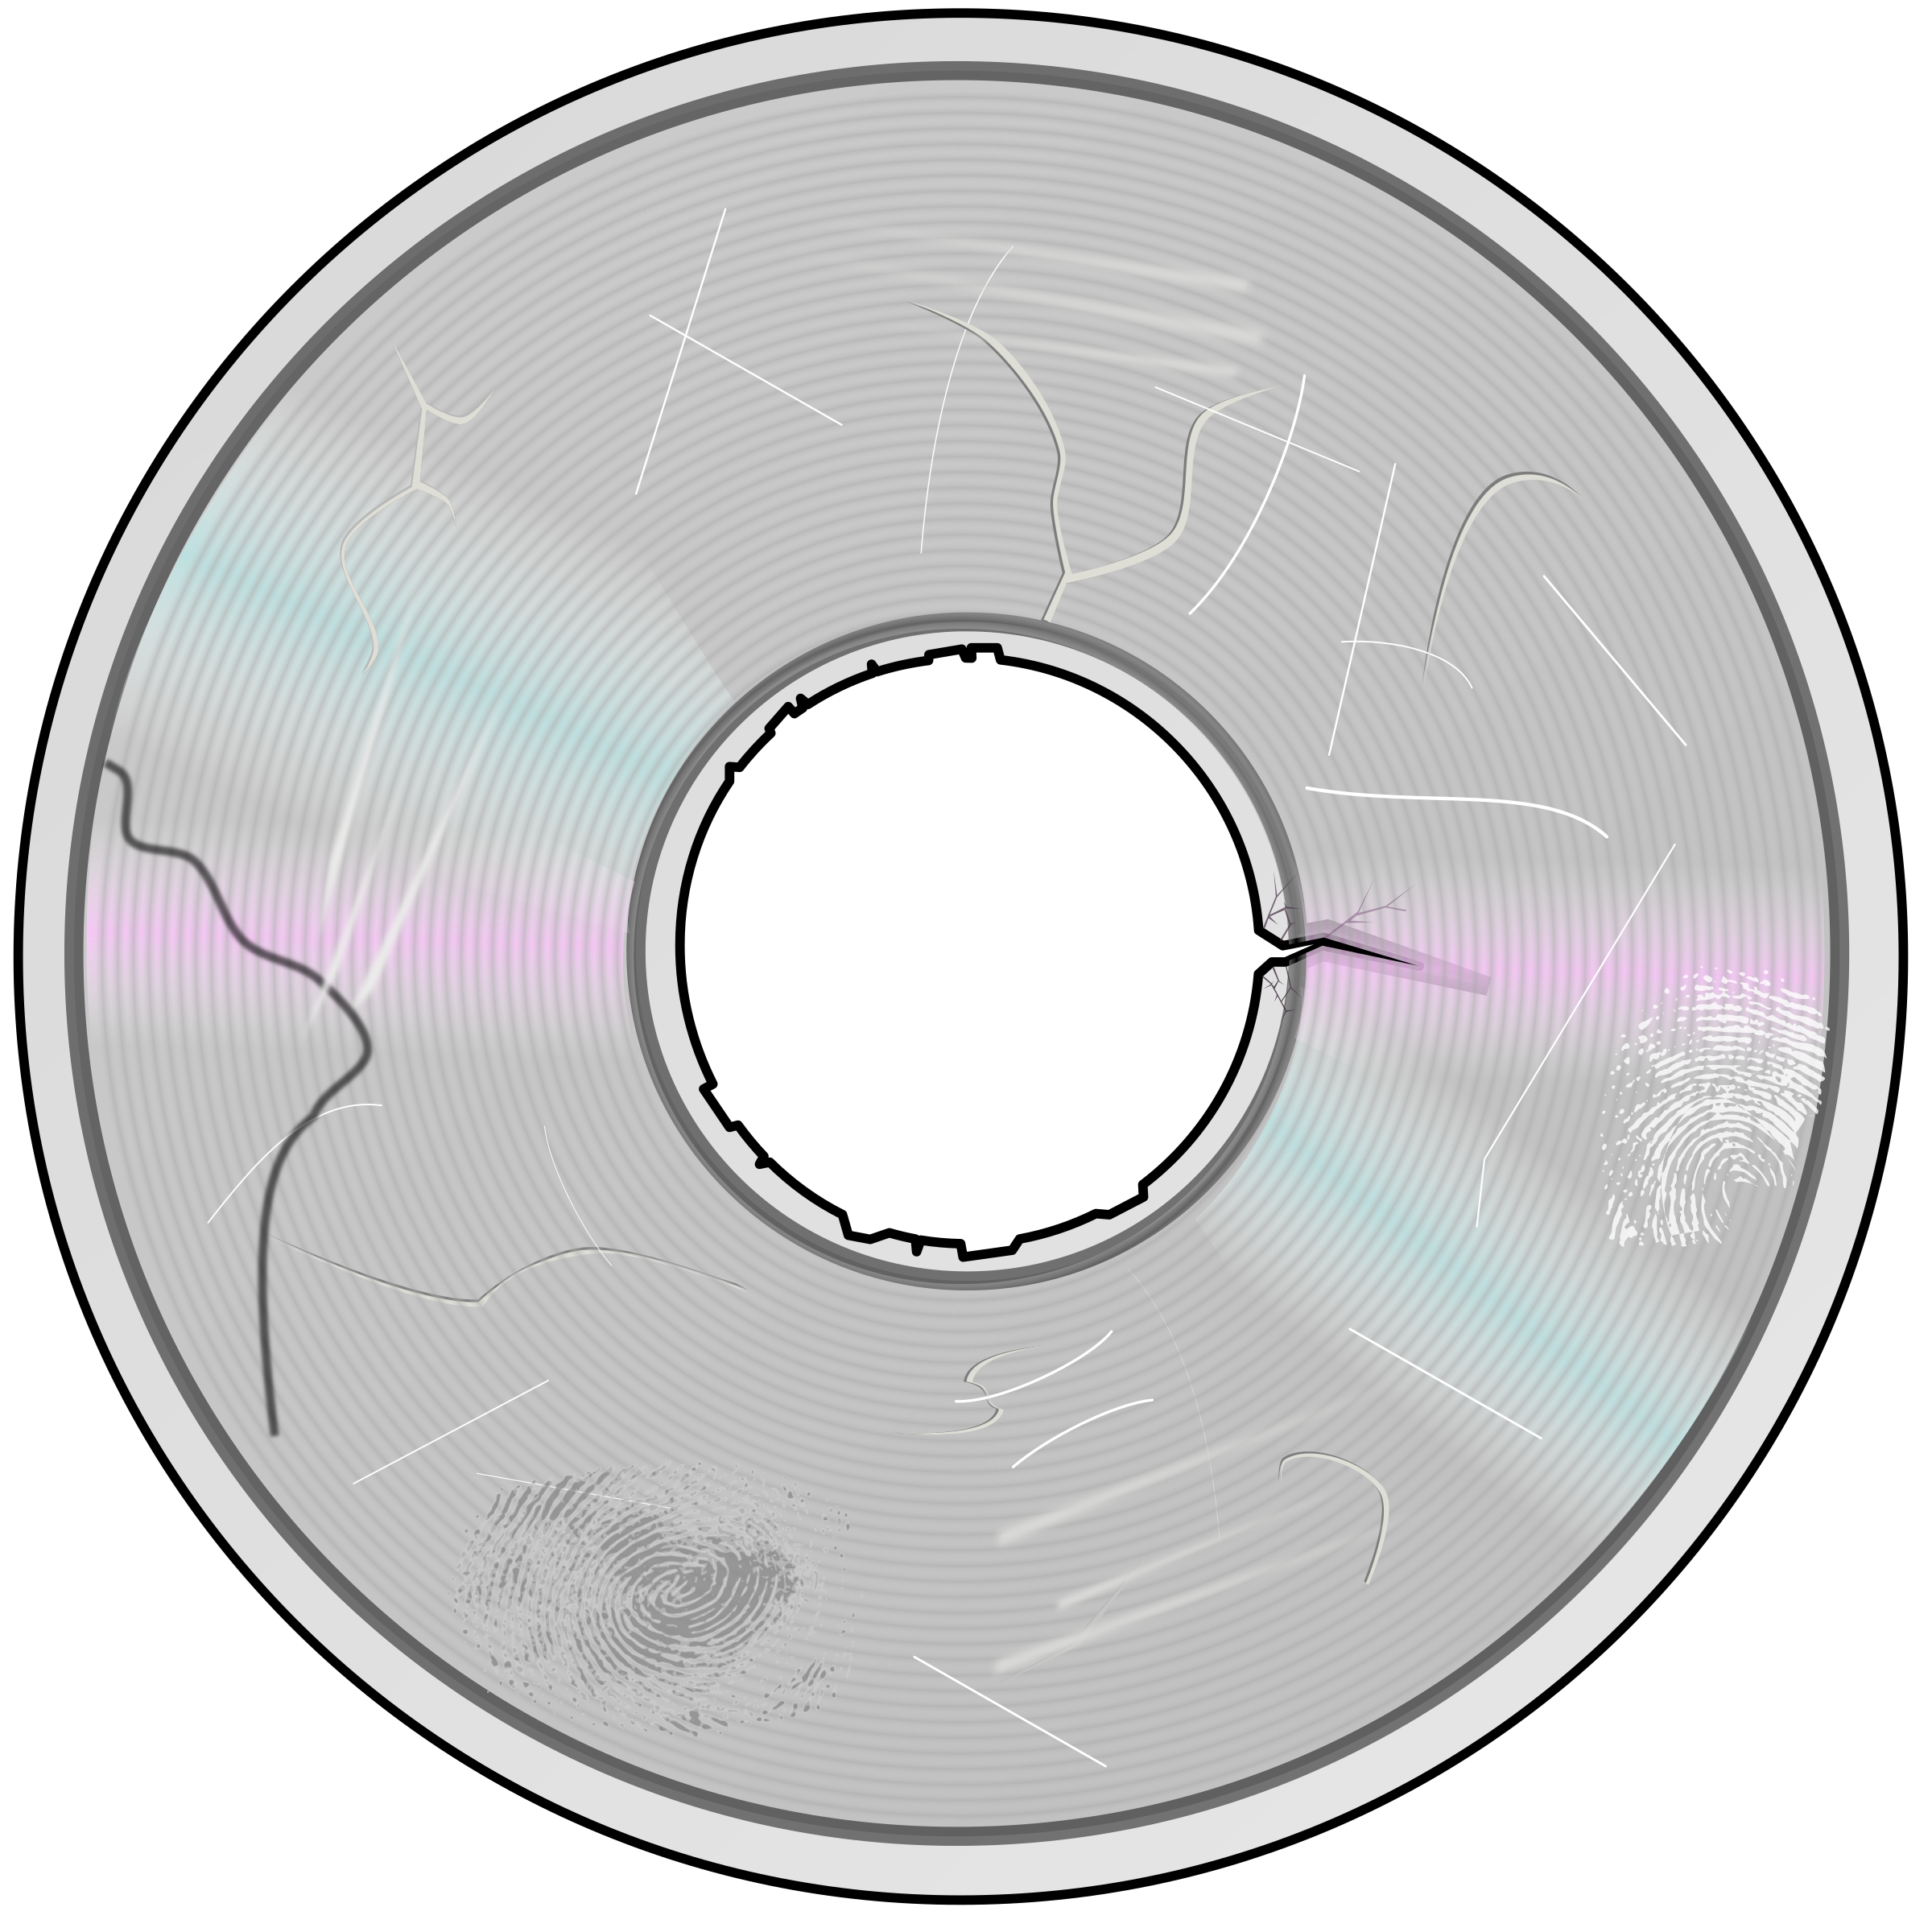 Severely Damaged Compact Disc by eady